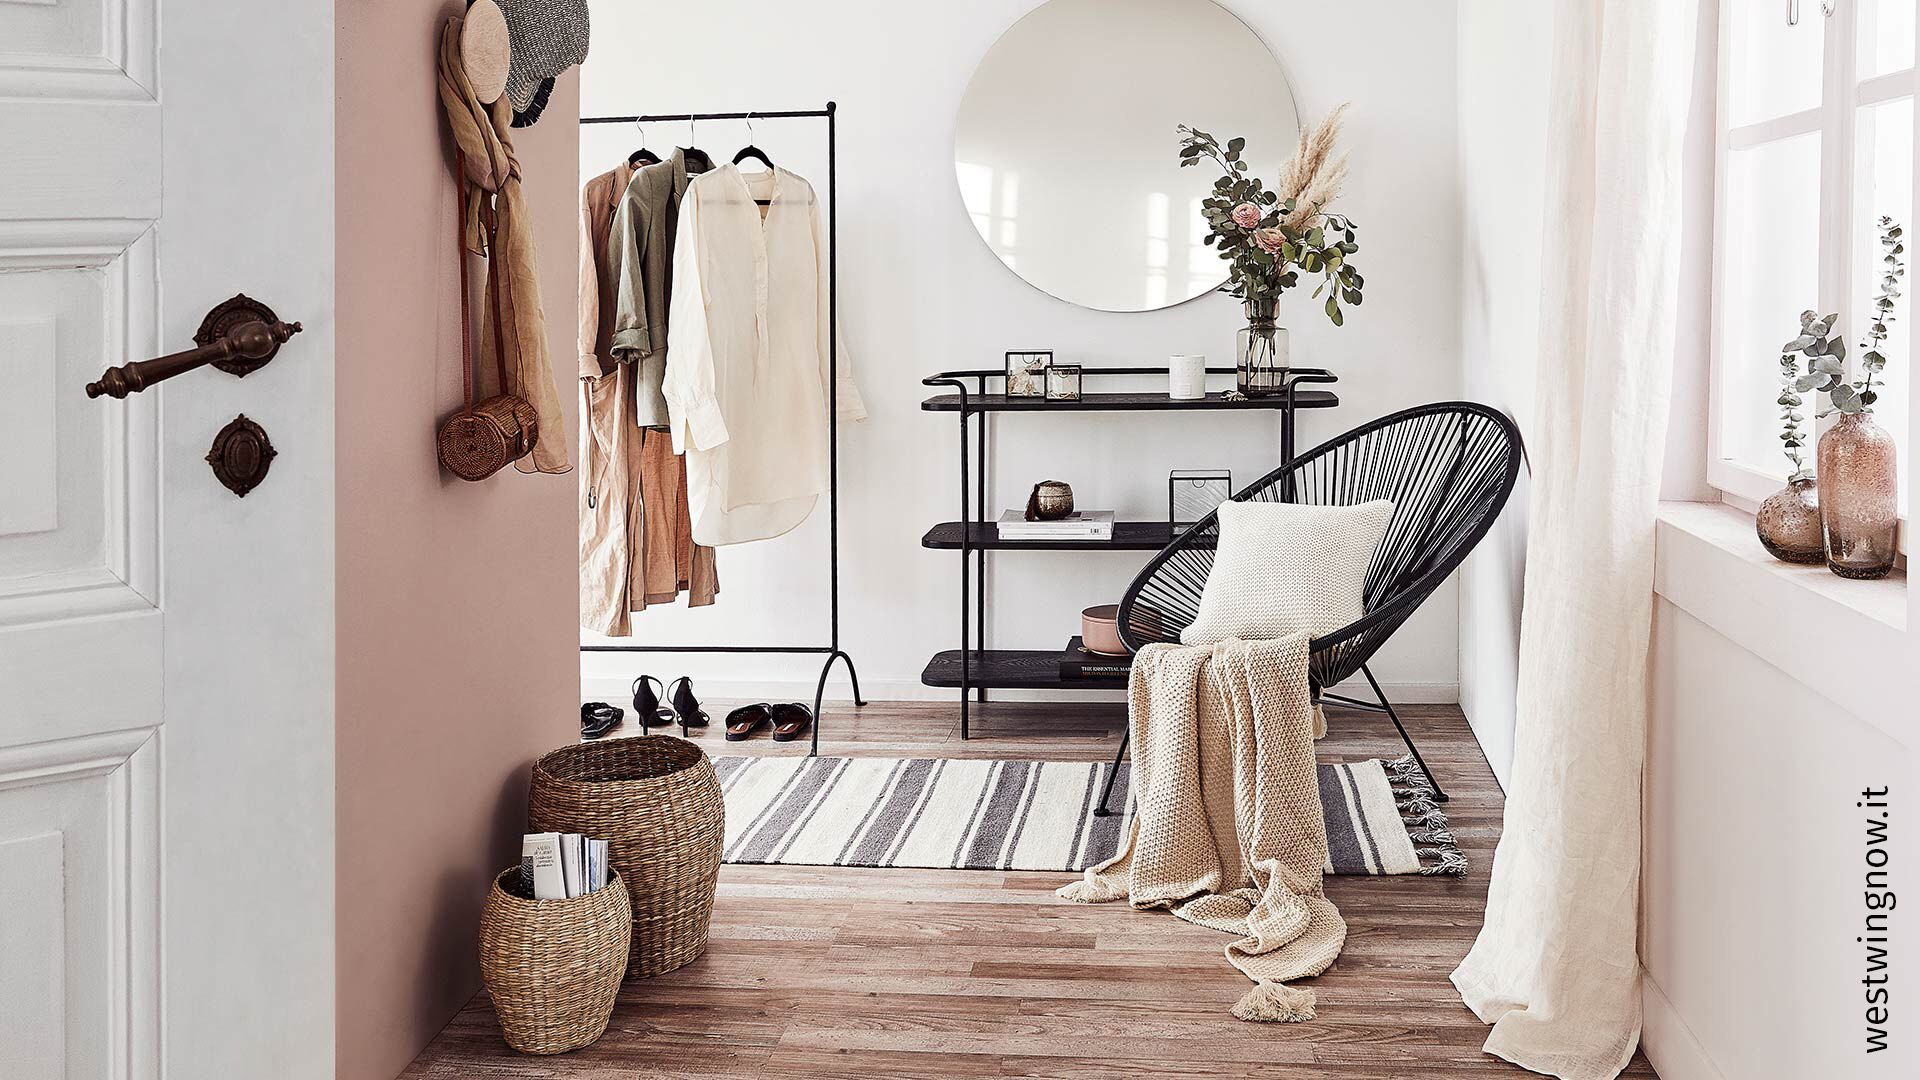 Neutral tones, like the ones seen here in westwingnow.it, offer a cool, modern look to any project. Zen Chic's 2019 Spotted collection brings a beautiful range of these versatile colors.